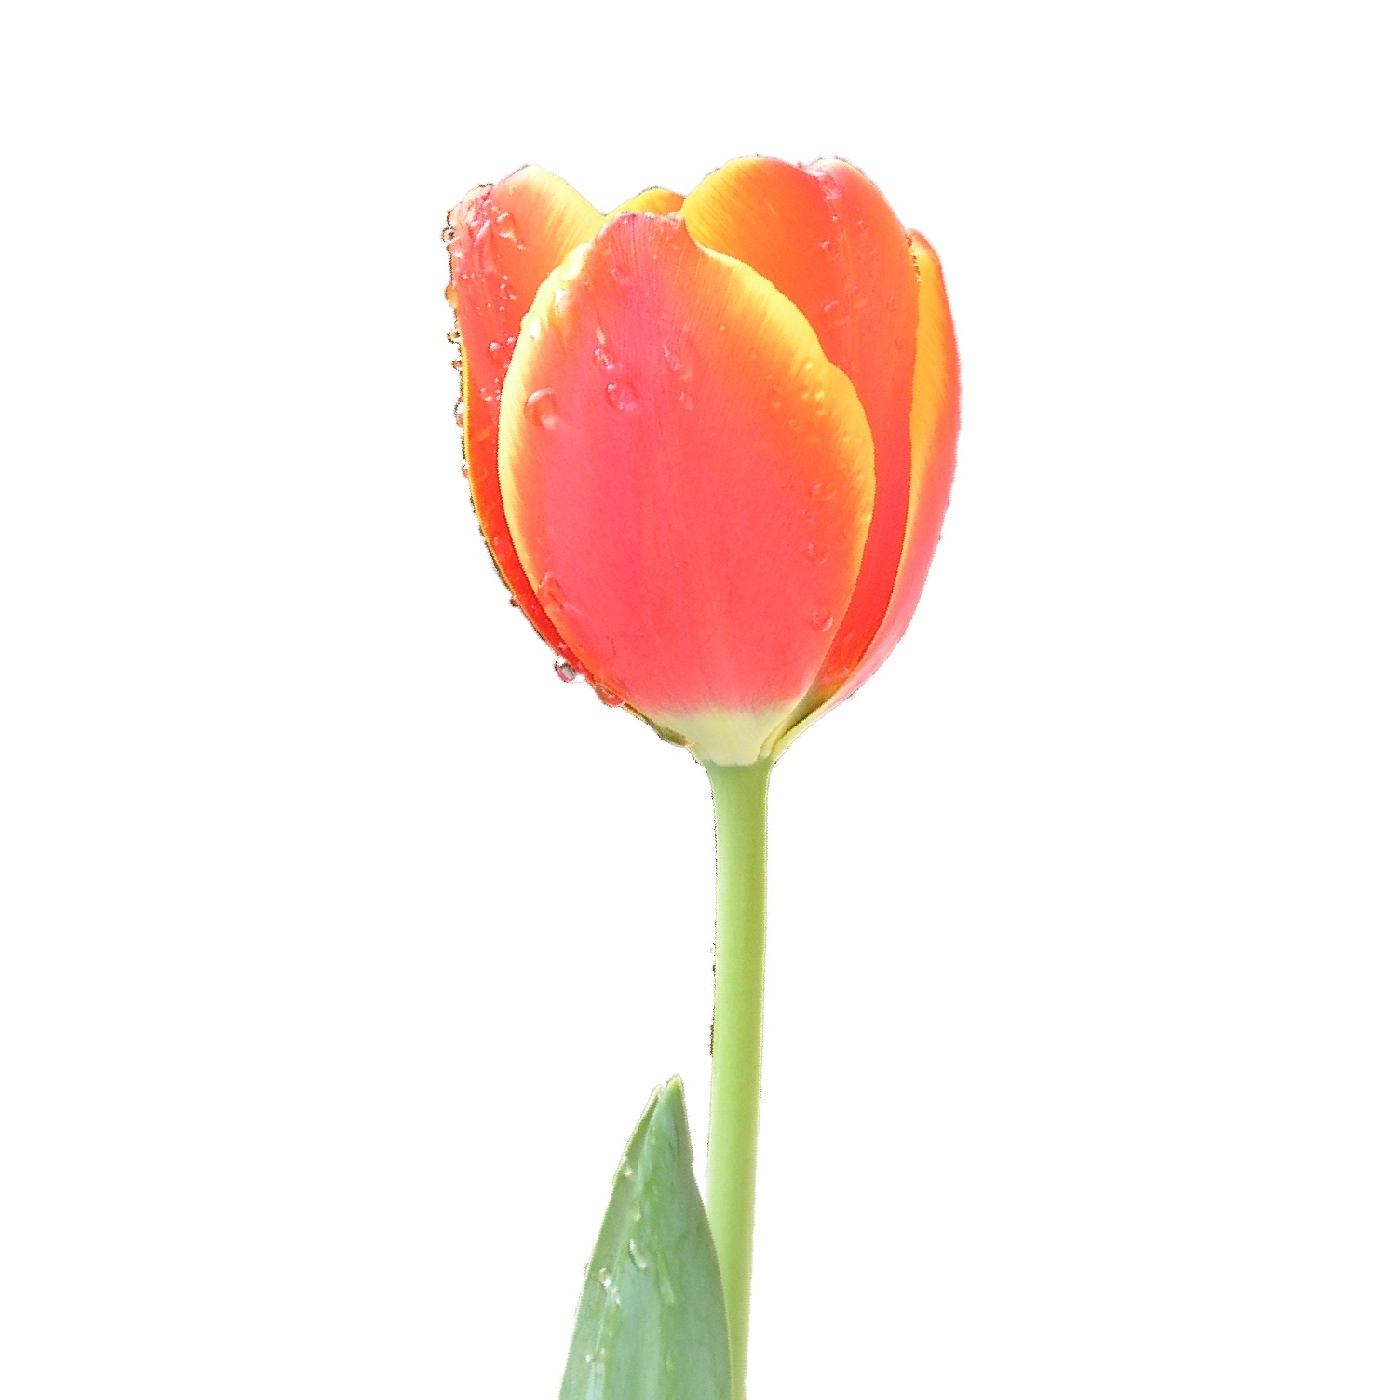 1400x1400 Filetulip Single Upright.png